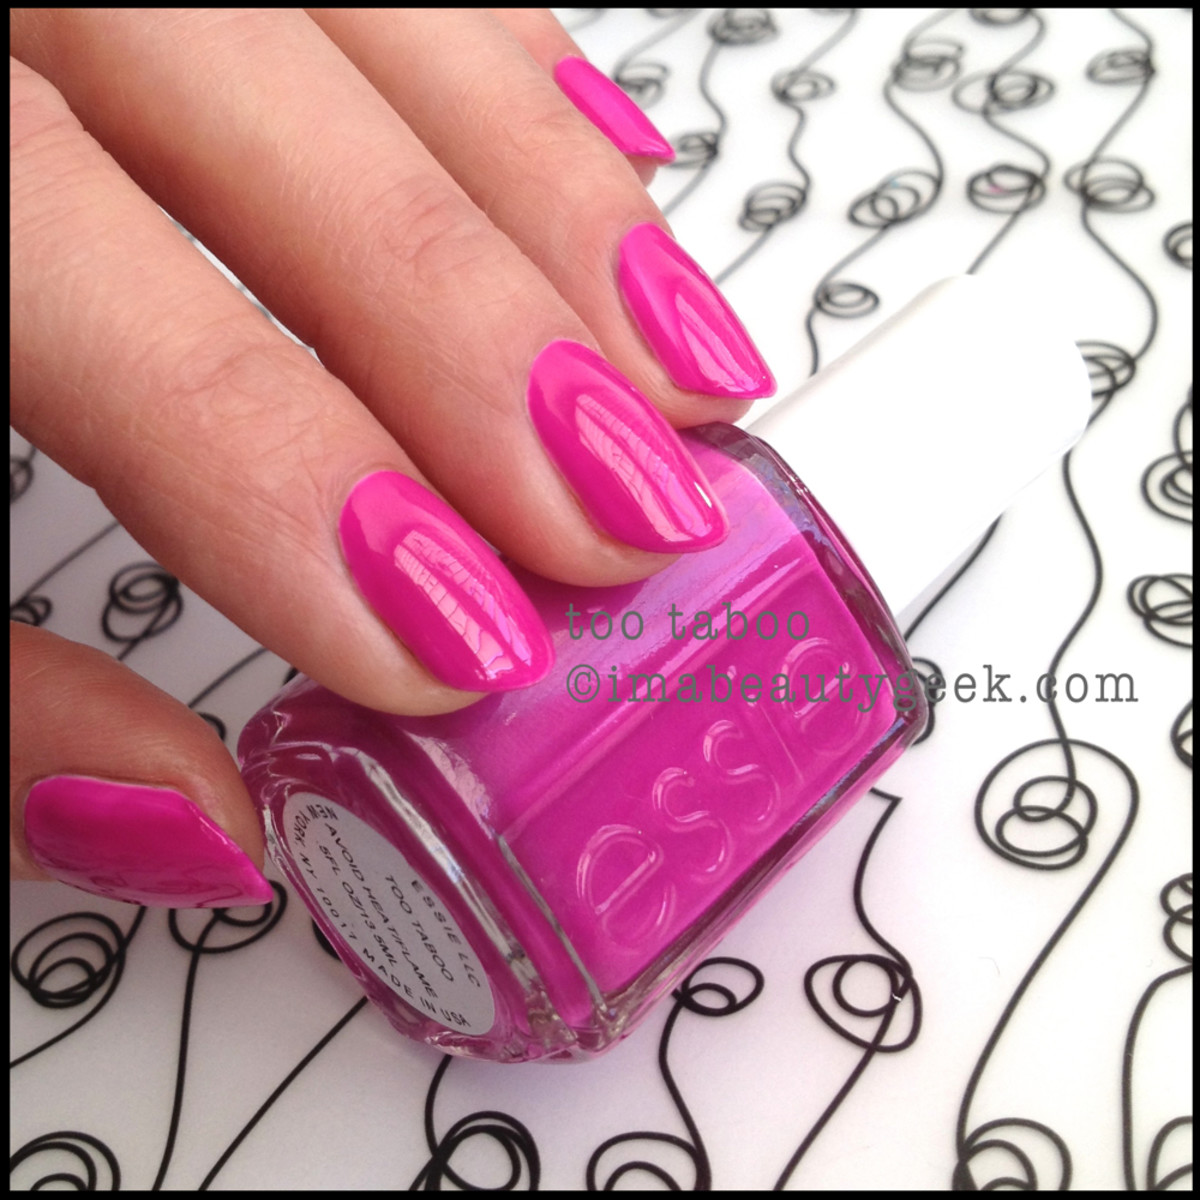 Essie Too Taboo_2 Neon 2014